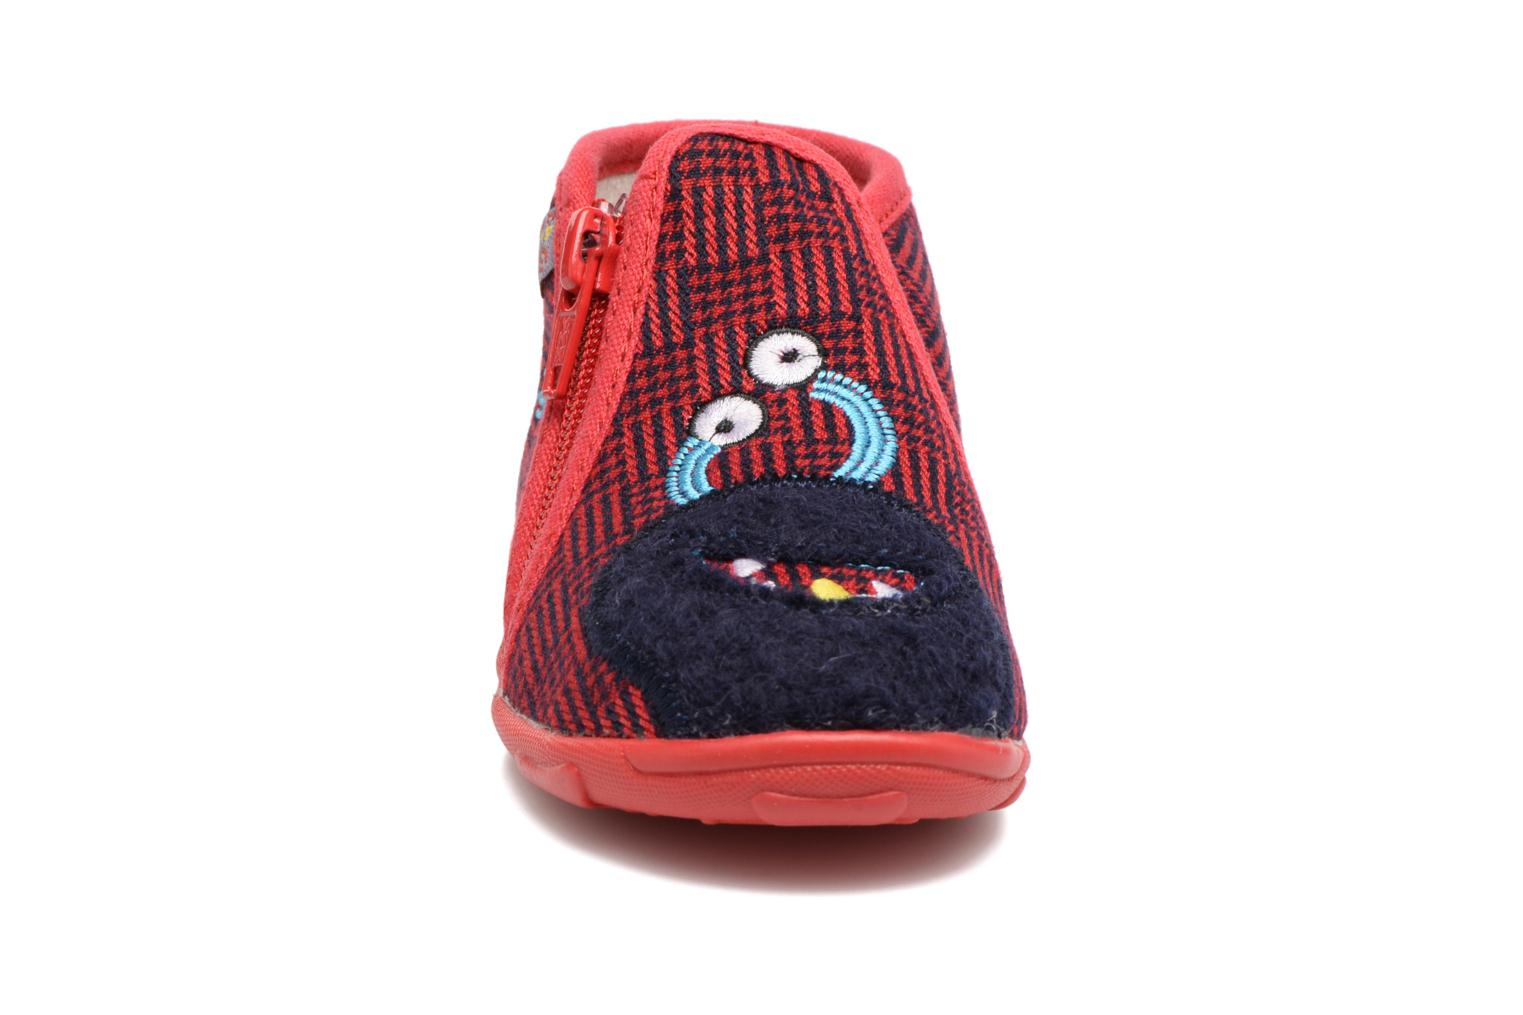 Chaussons GBB Paco Rouge vue portées chaussures